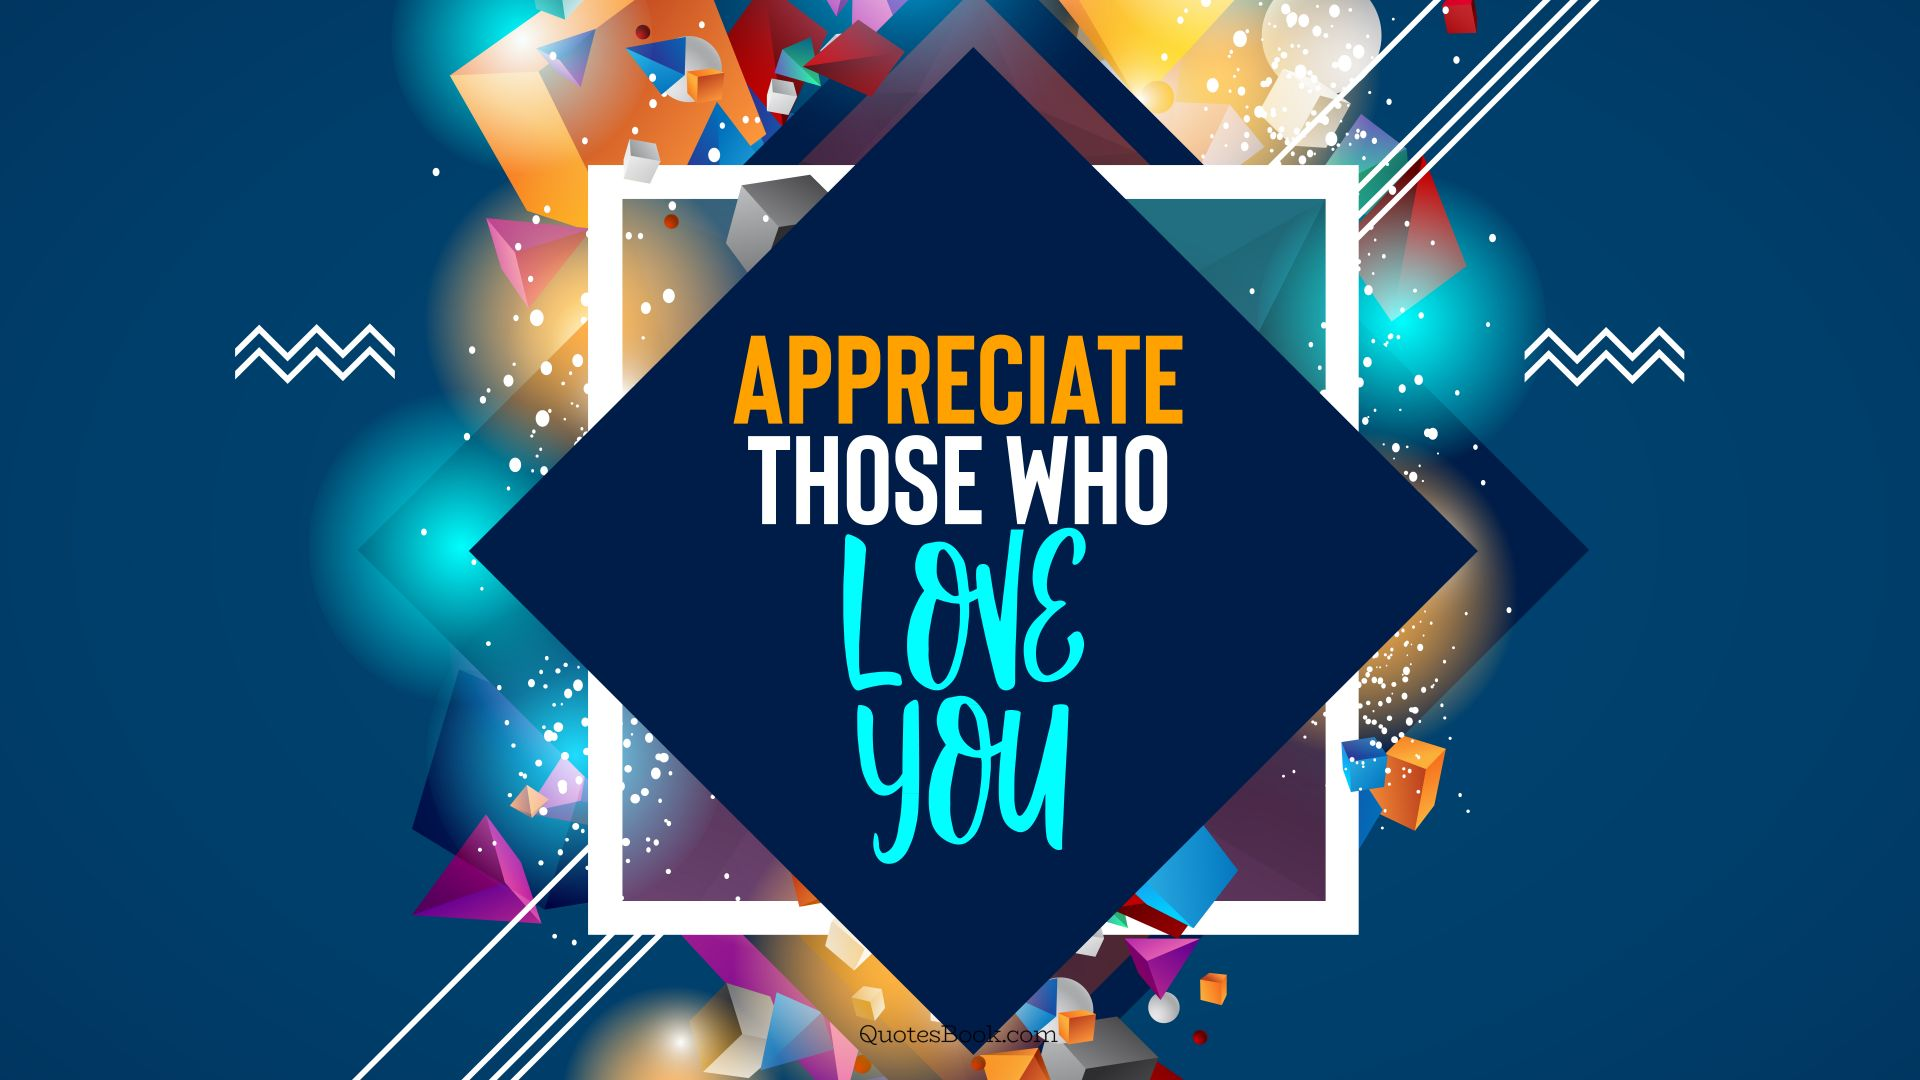 Appreciate those who love you. - Quote by QuotesBook